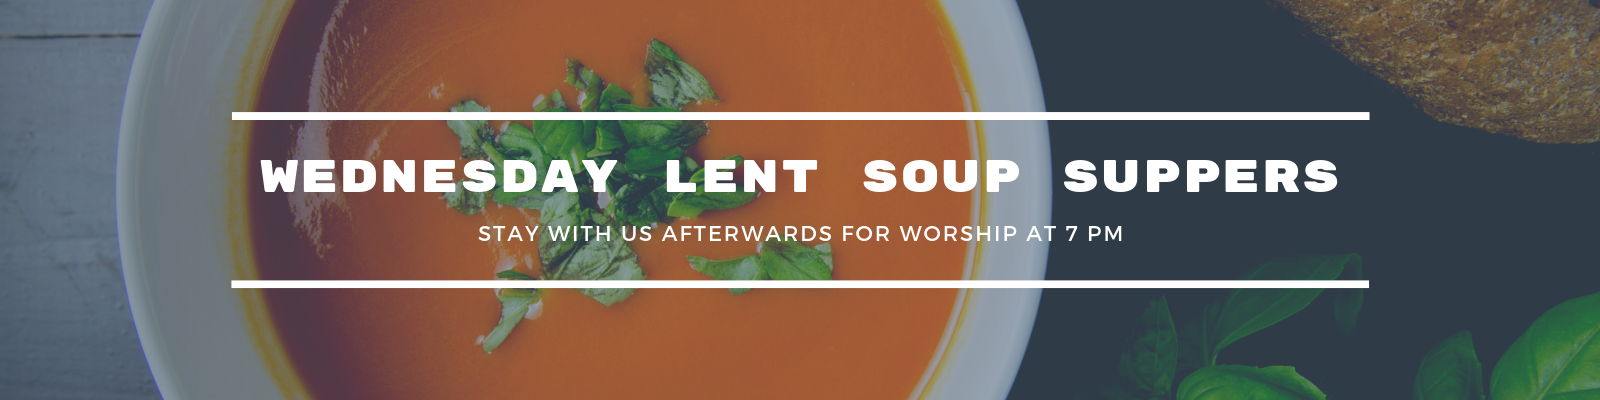 Join us for Wednesday Lent Soup Suppers at St John Lutheran Church in Ely, Iowa